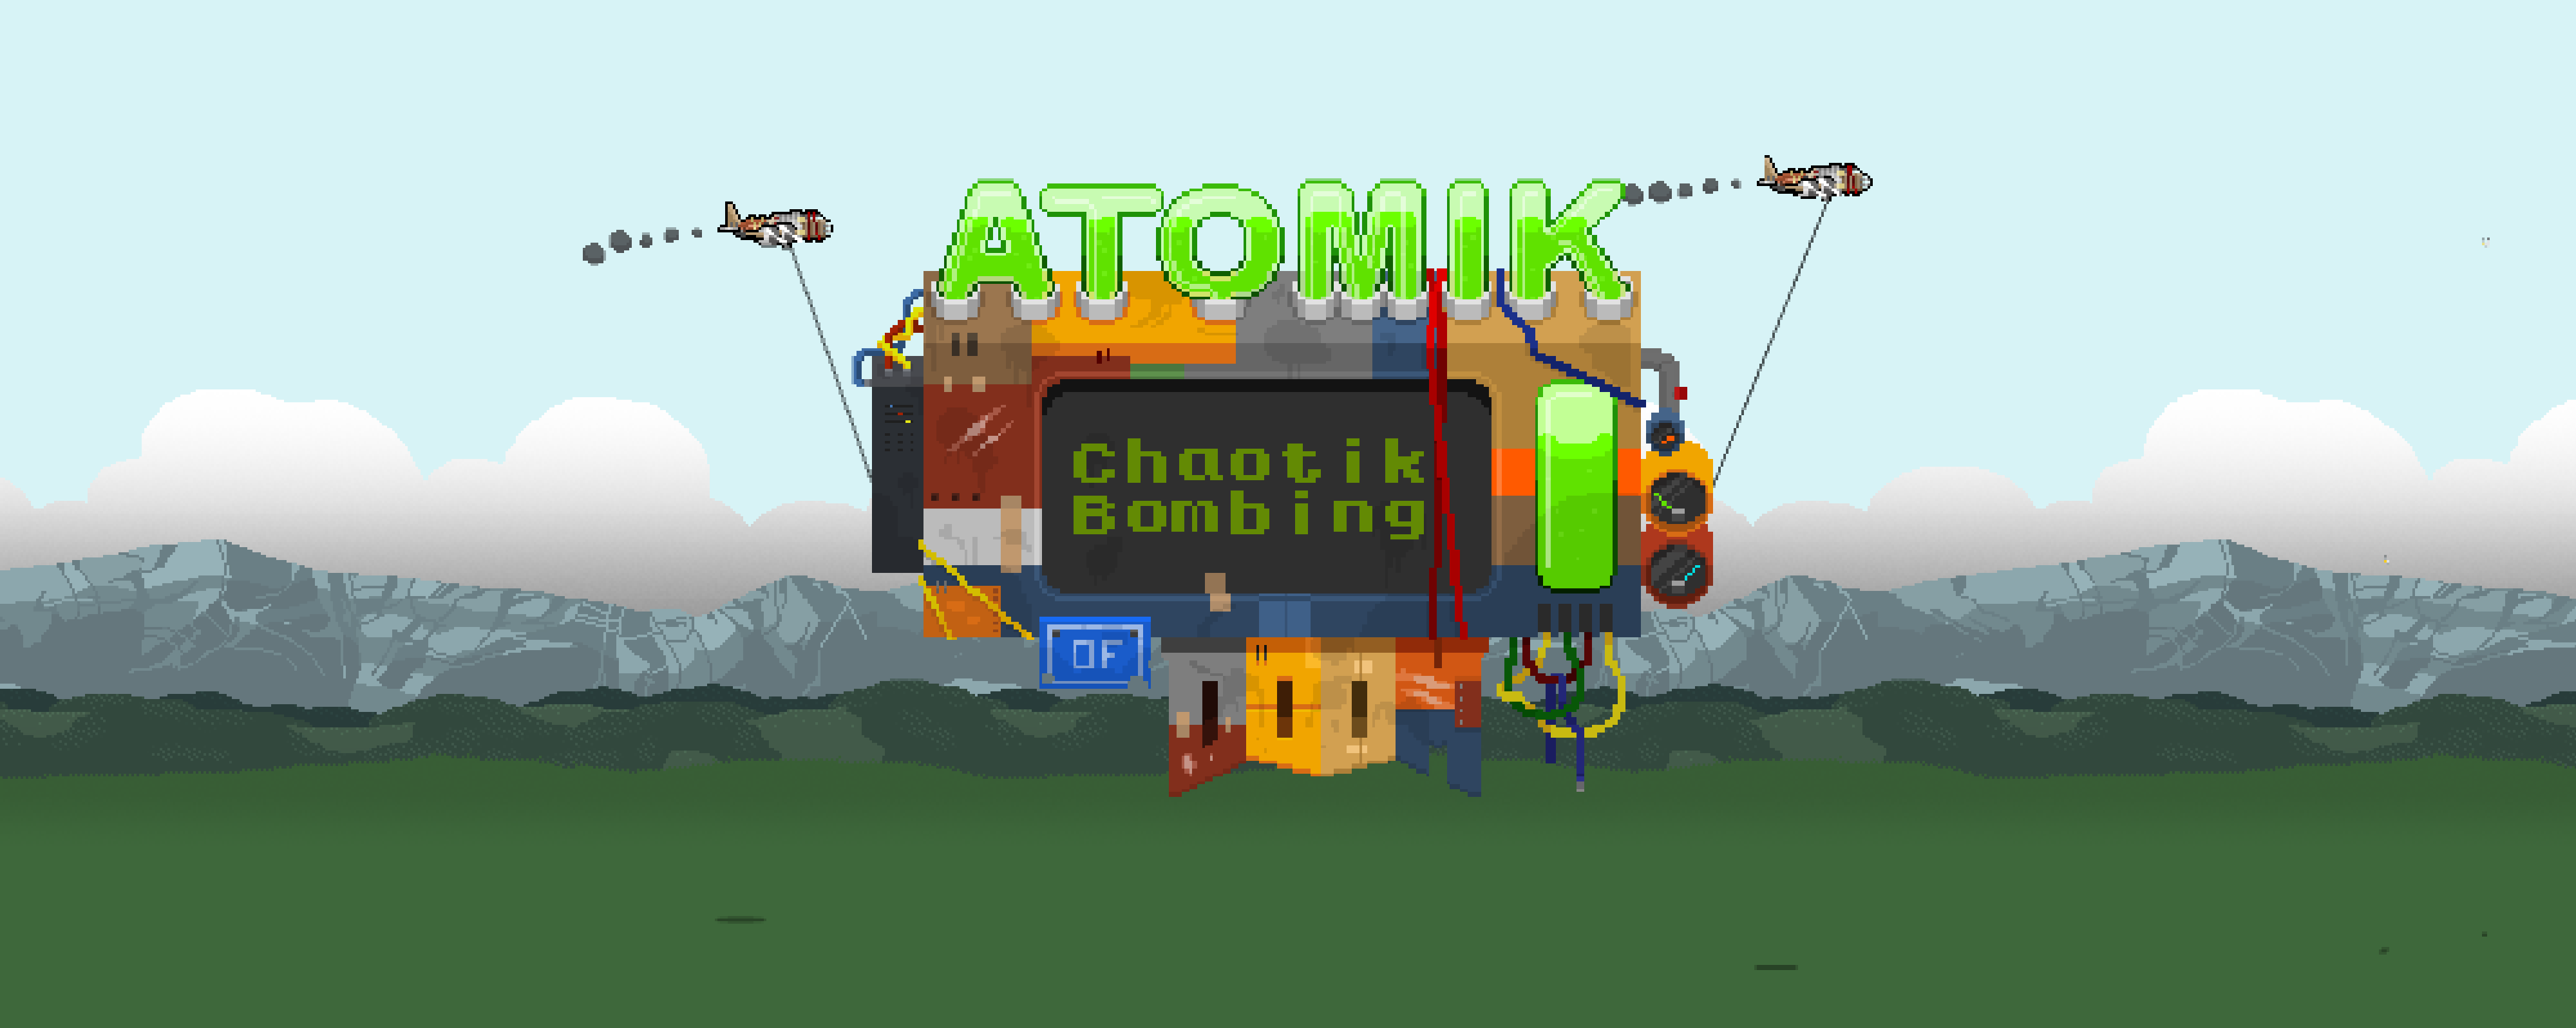 Atomik Chaotik Bombing of Doom